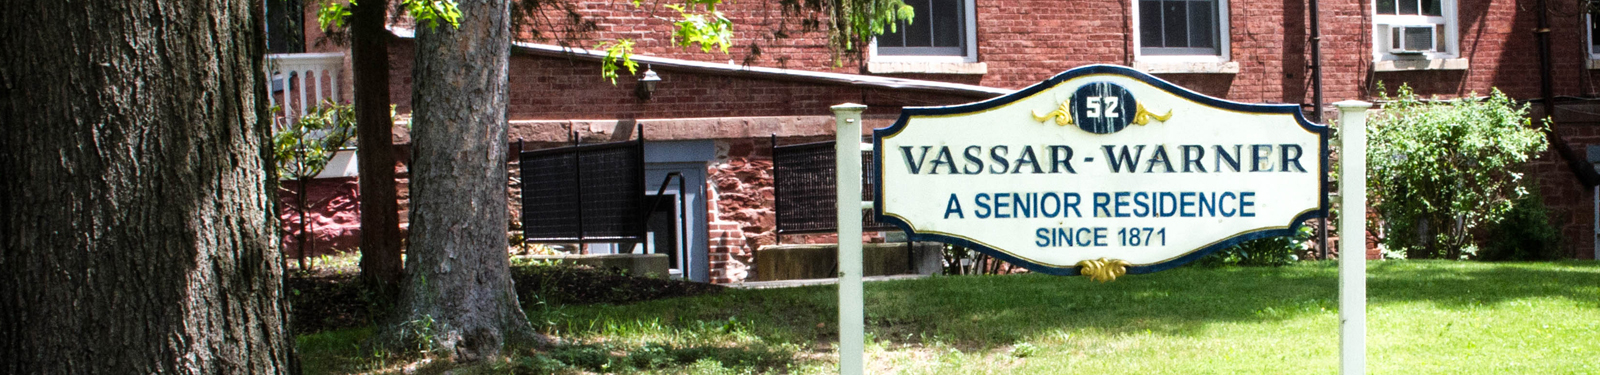 Vassar-Warner home, a senior residence since 1871